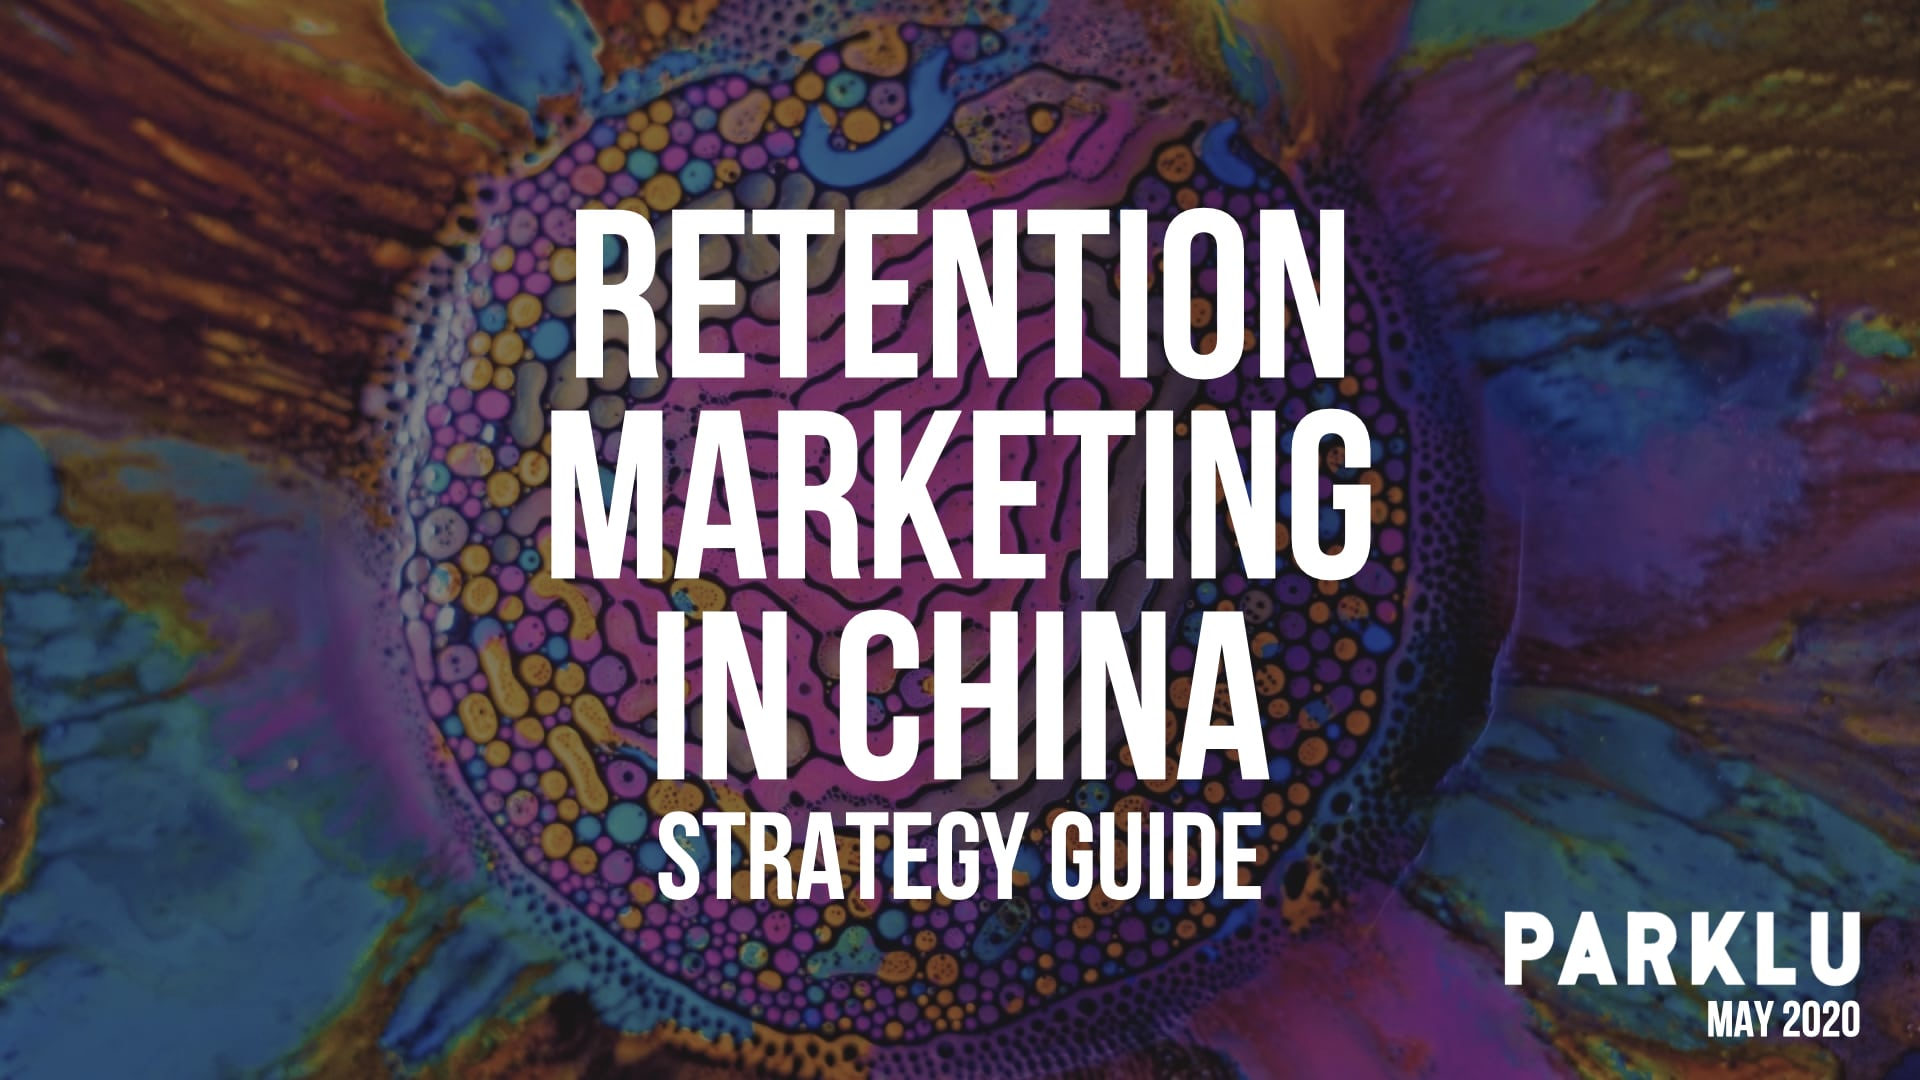 PARKLU Retention Marketing Strategy Guide